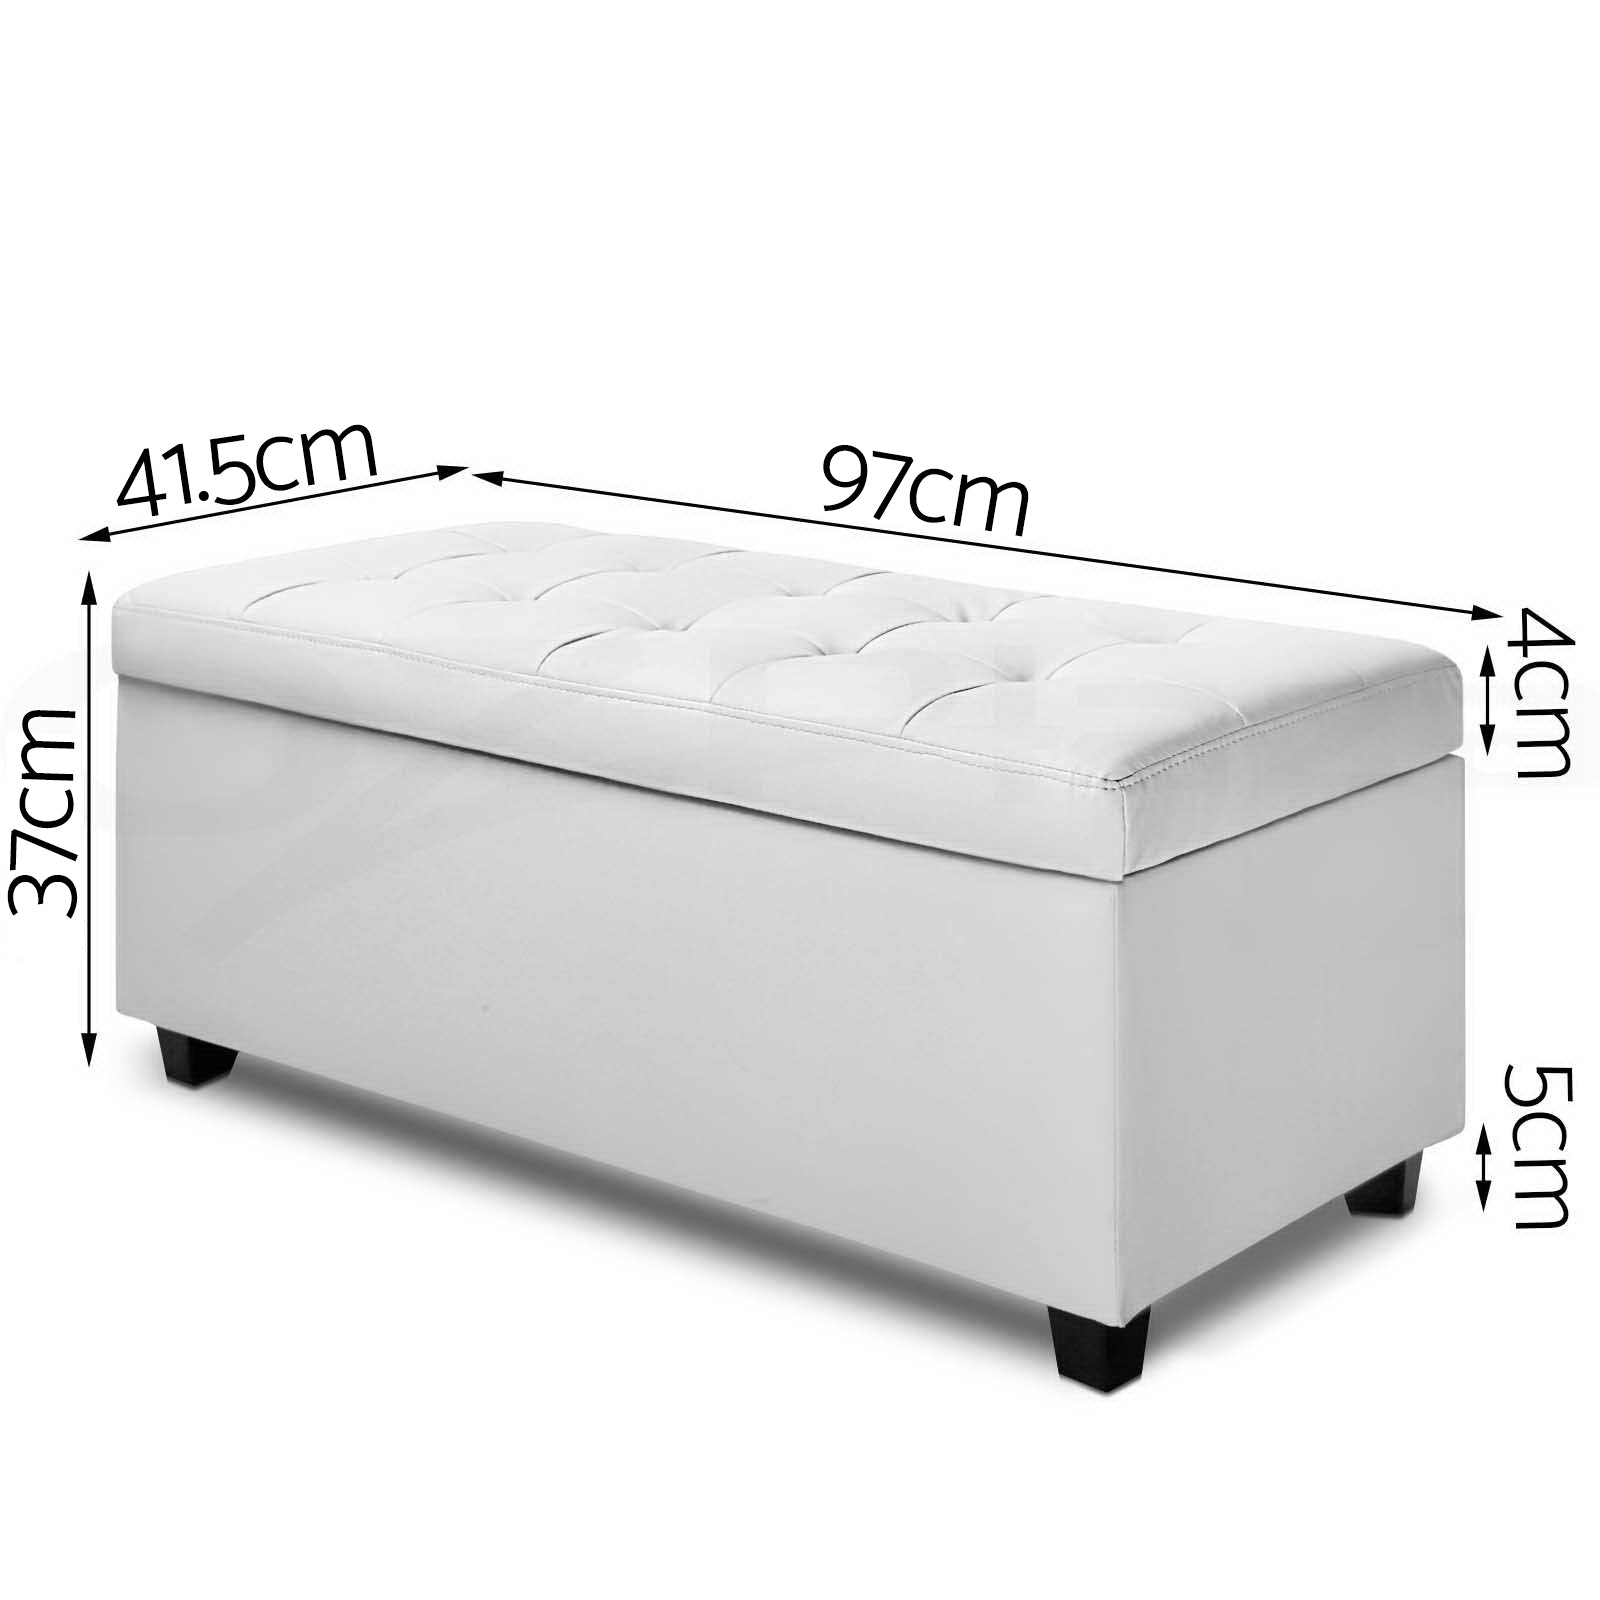 Artiss Large PU Leather Storage Ottoman - White